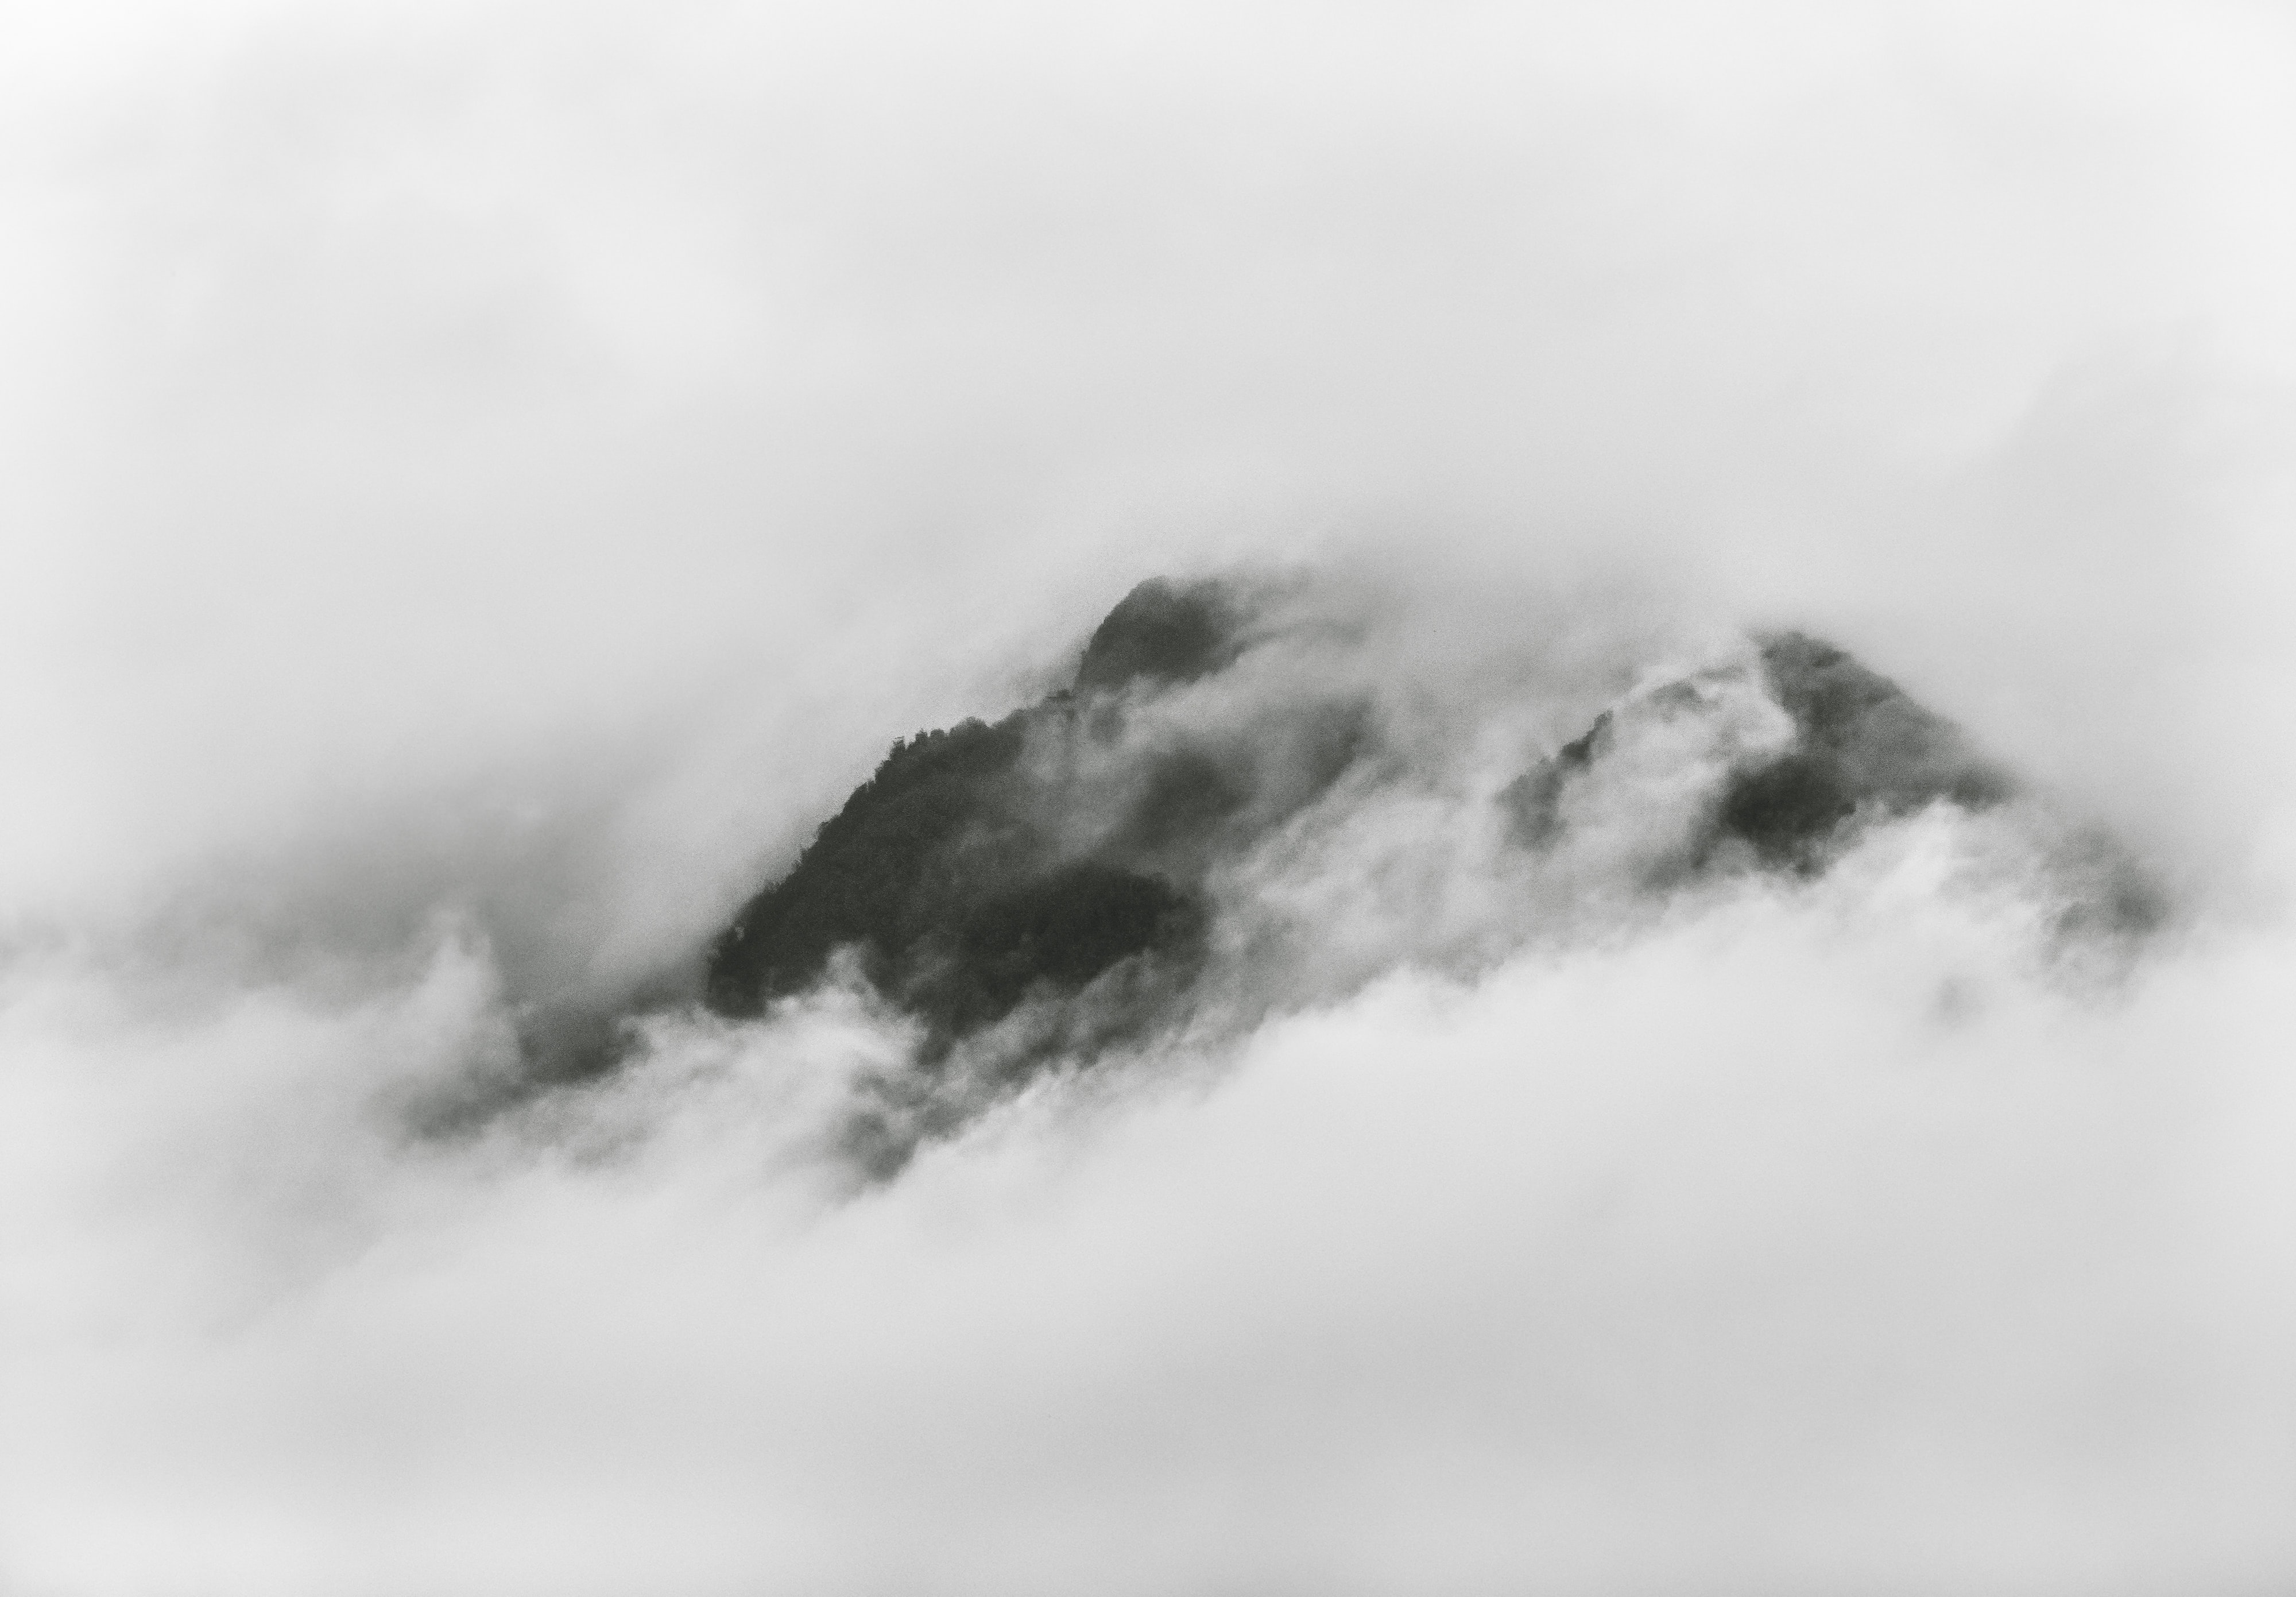 Misty mountains peek through clouds on an overcast day on the west coast